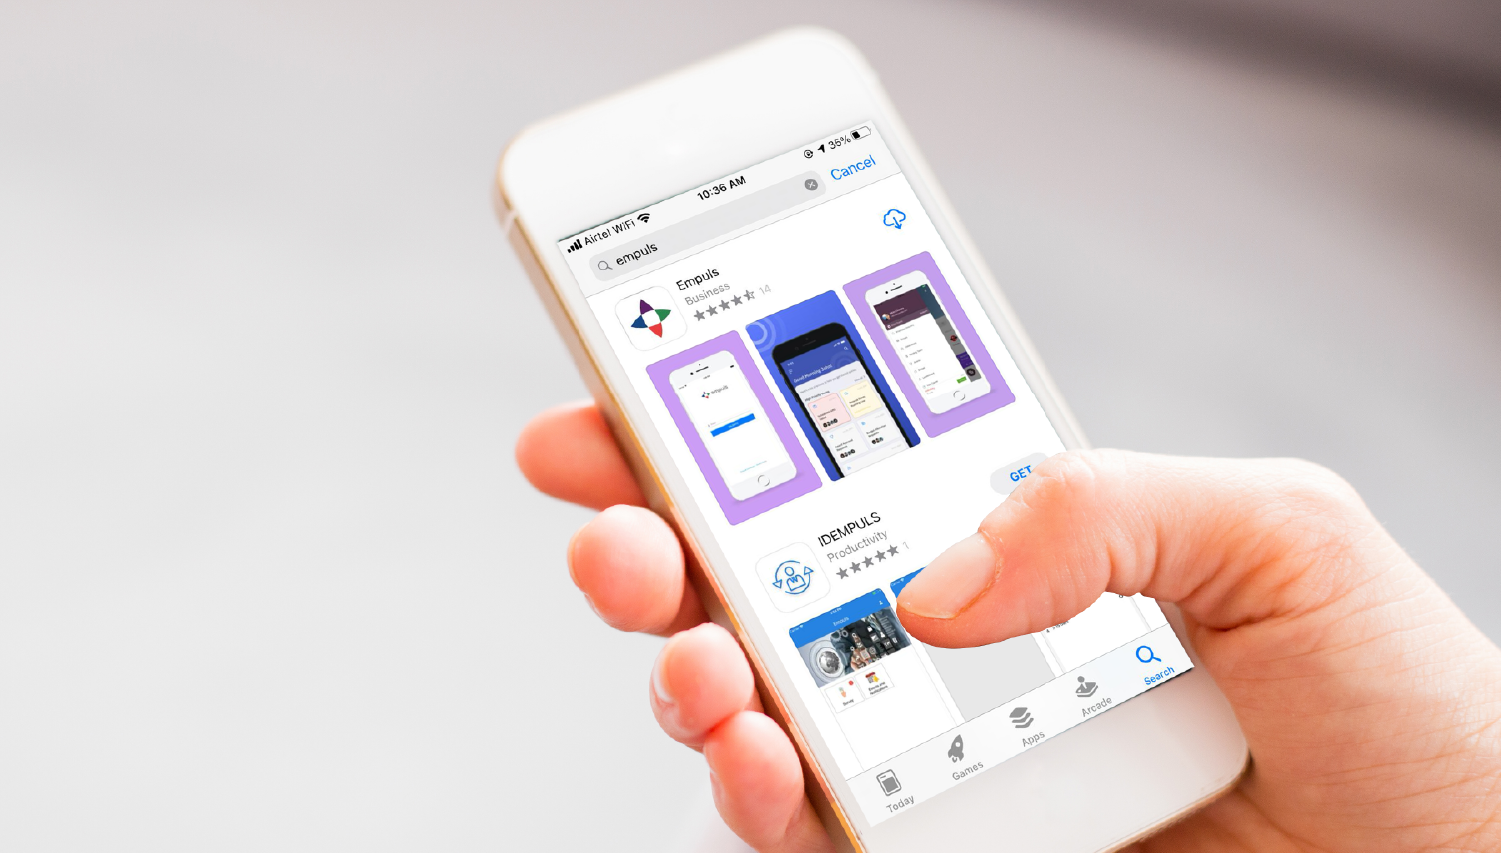 Empuls is available on iOS and Android devices.